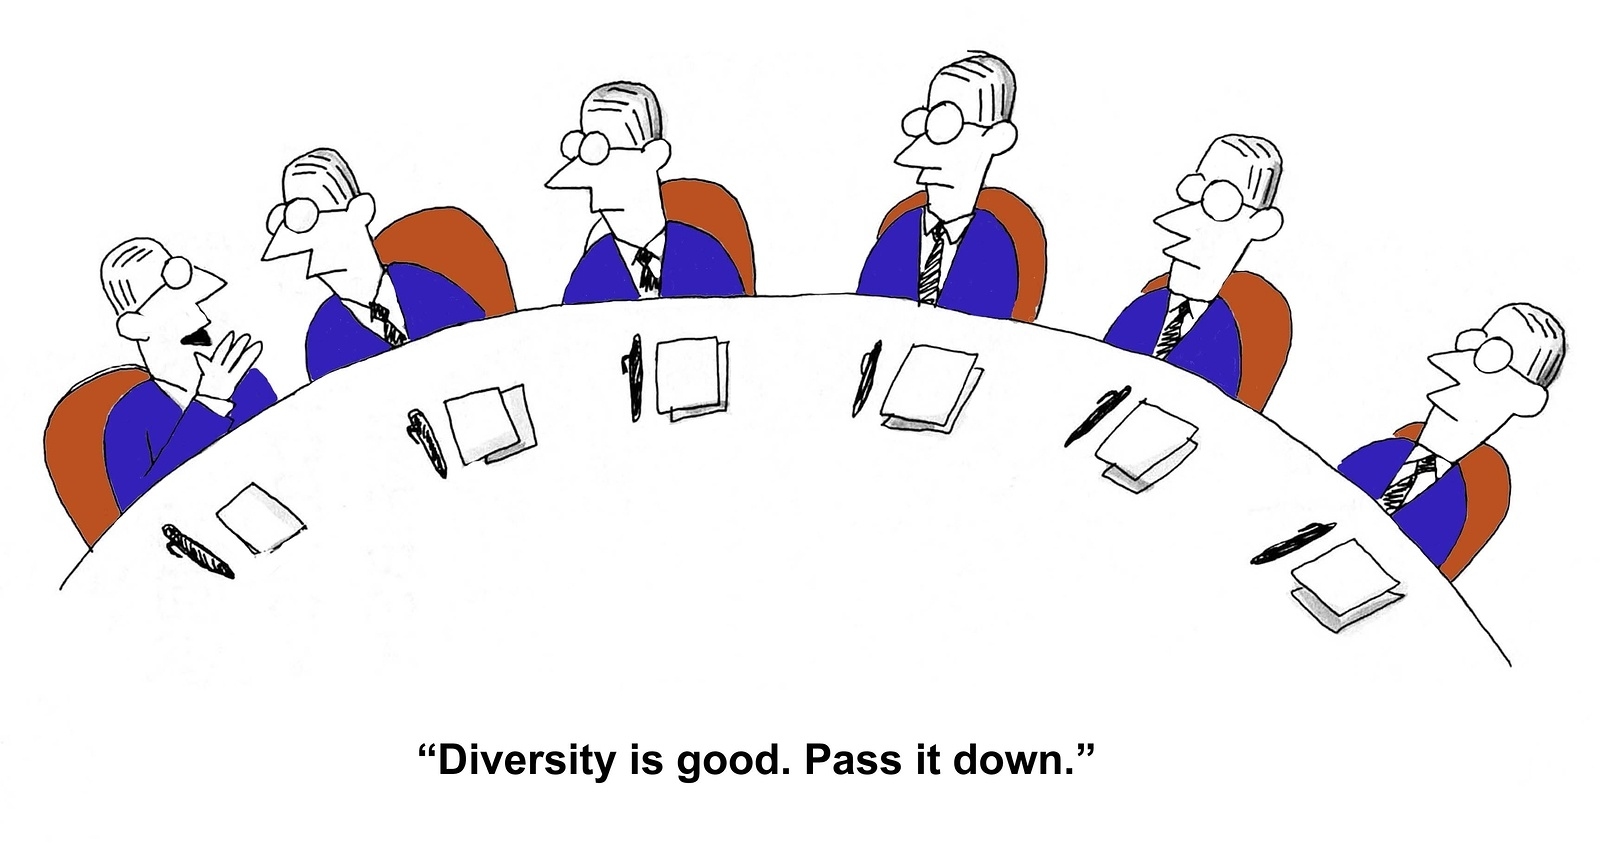 Diversity for a Business